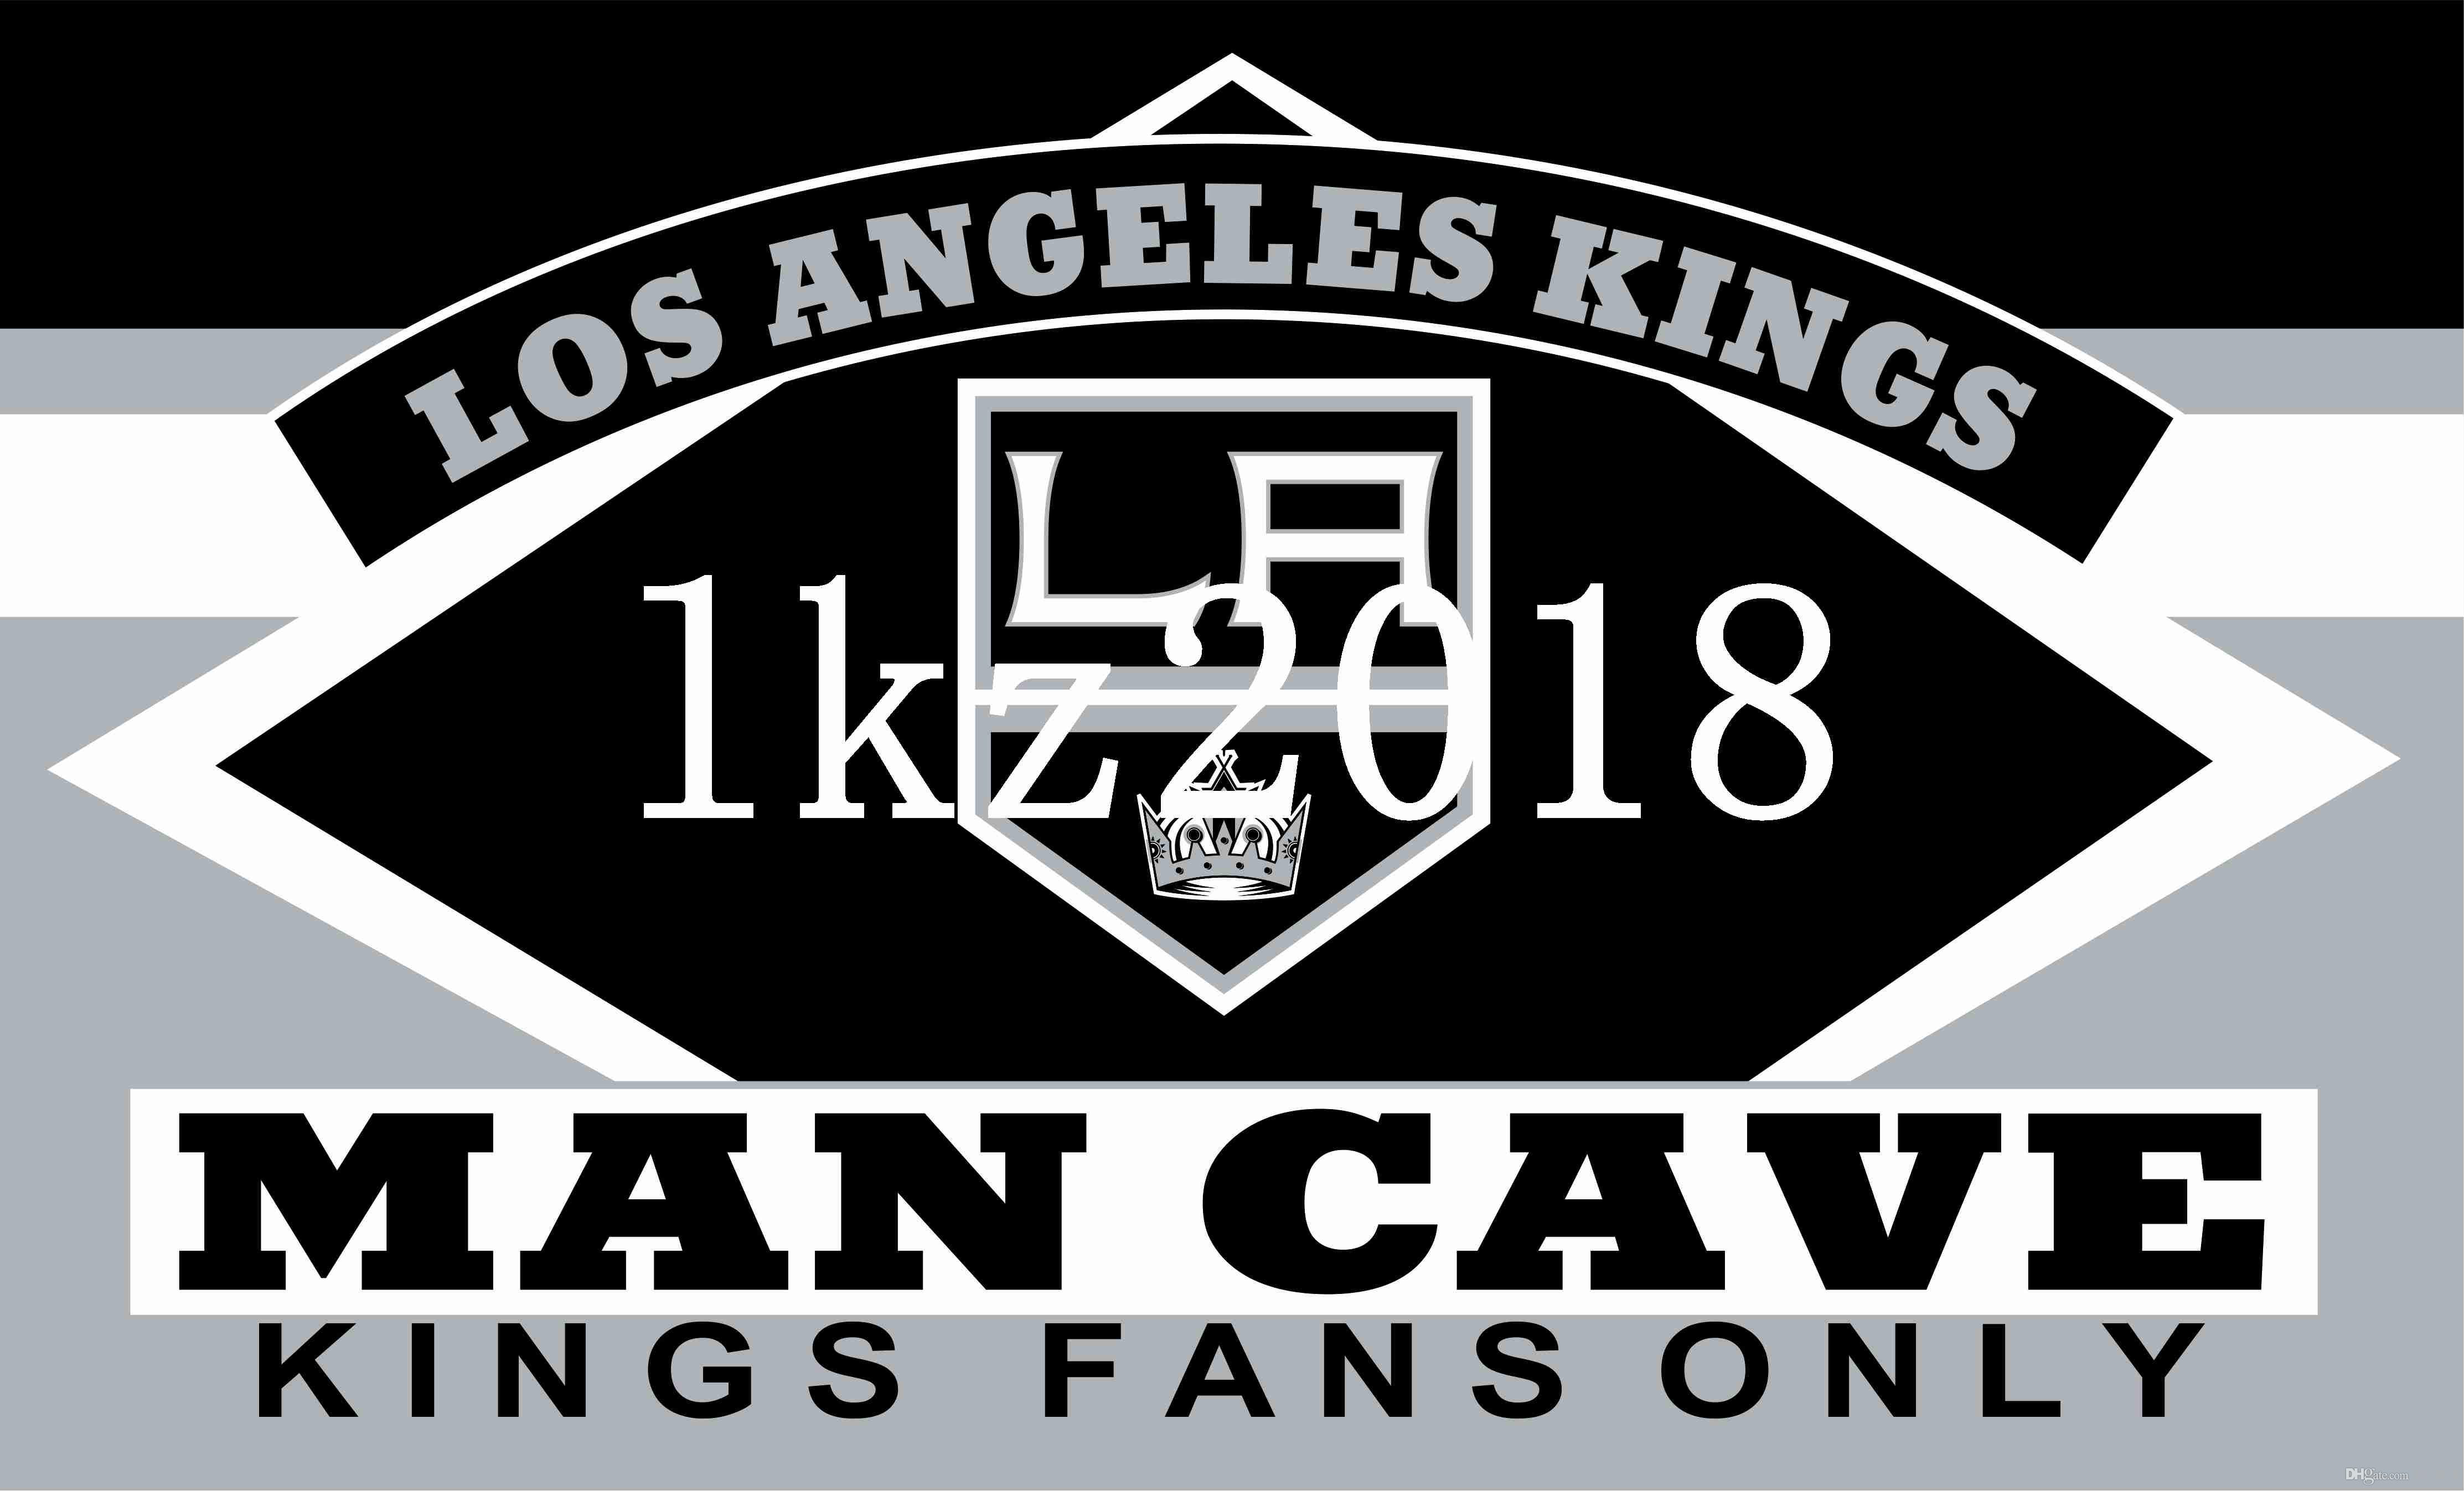 Man Cave Kings Cross : Los angeles kings nhl logo flag for life and man